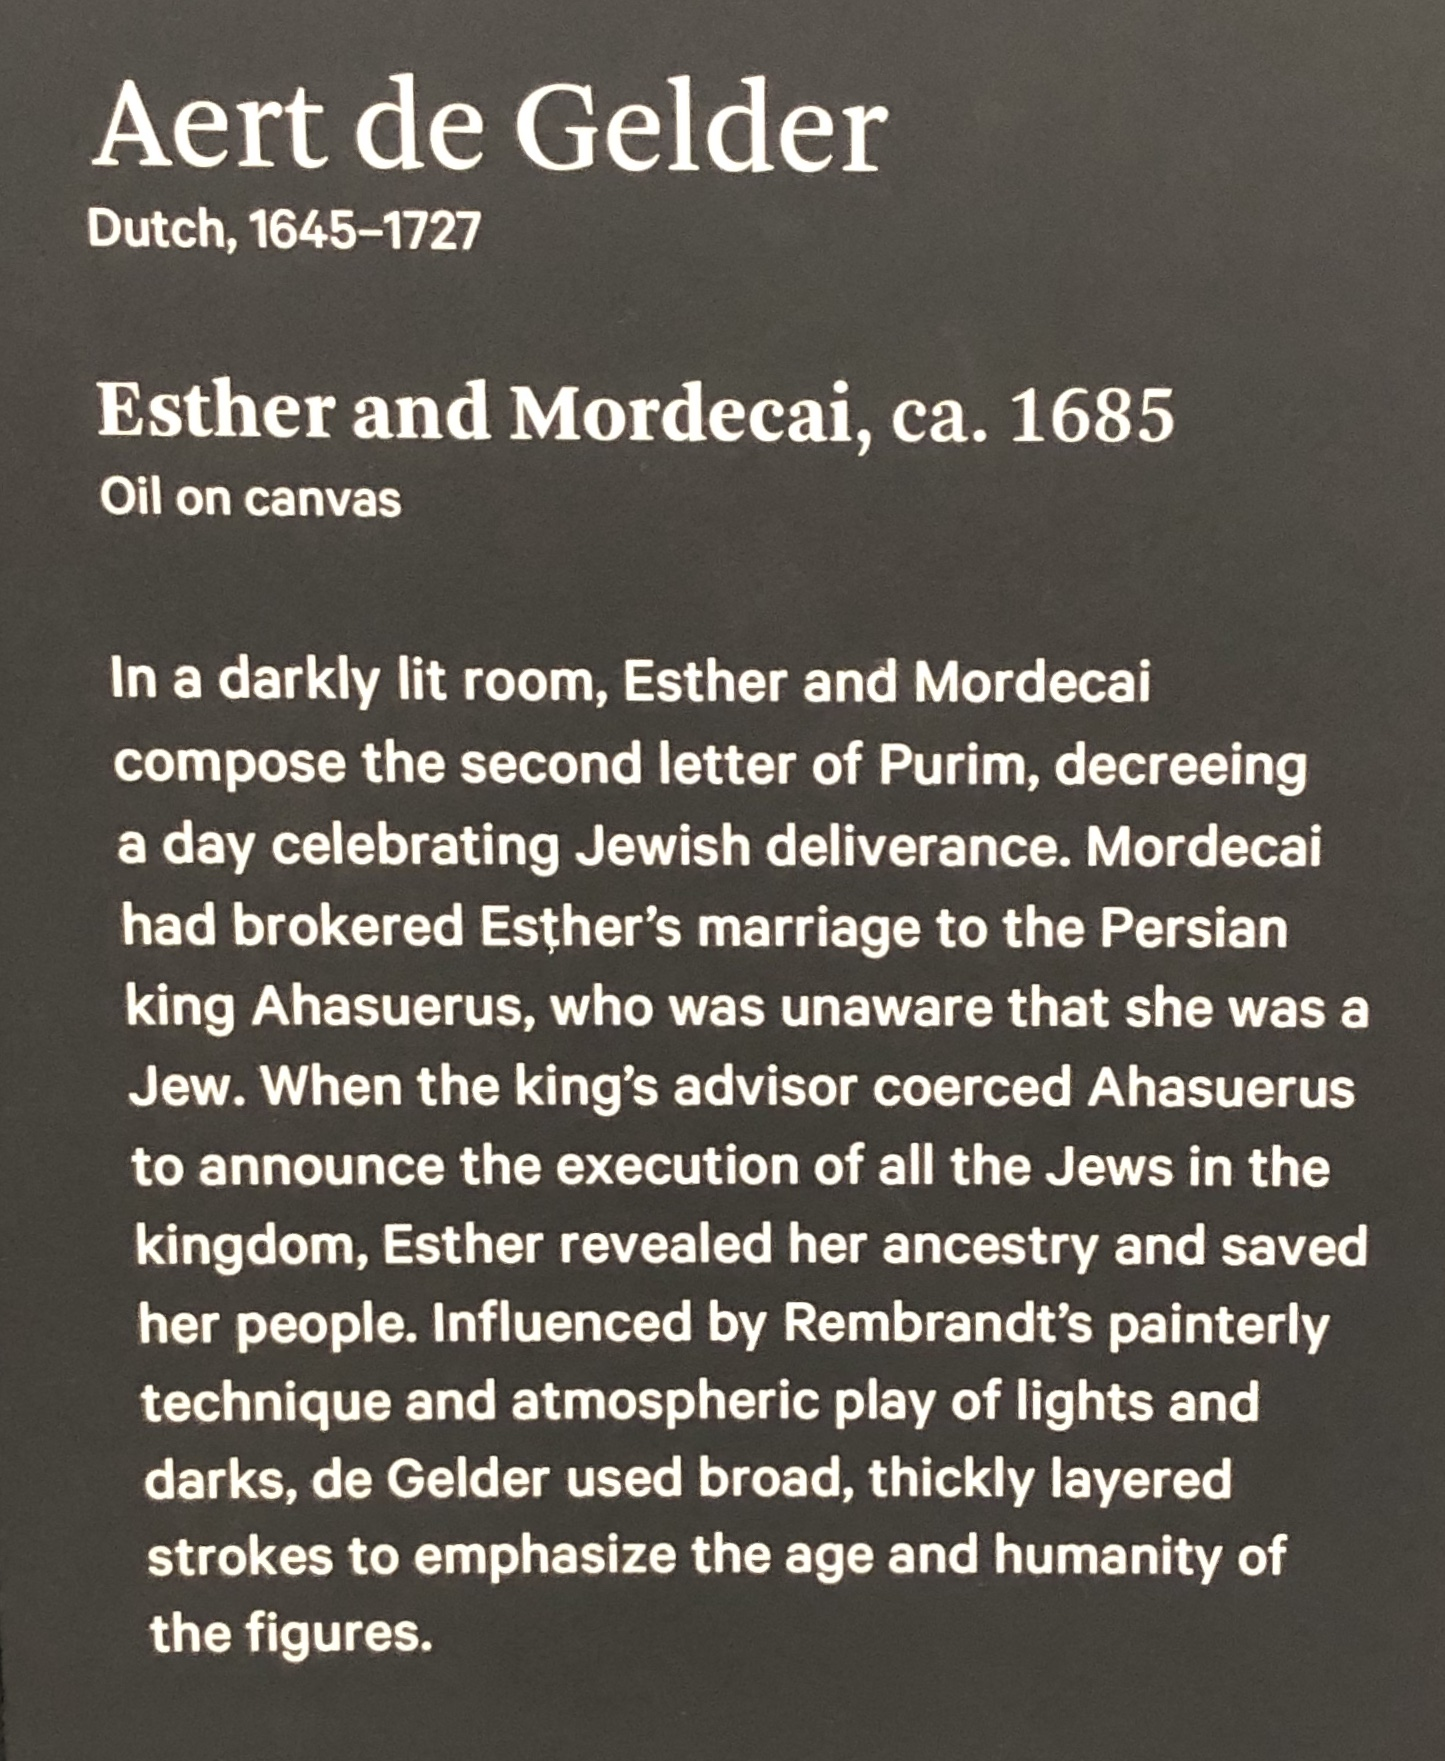 112919-Esther-and-Mordecai